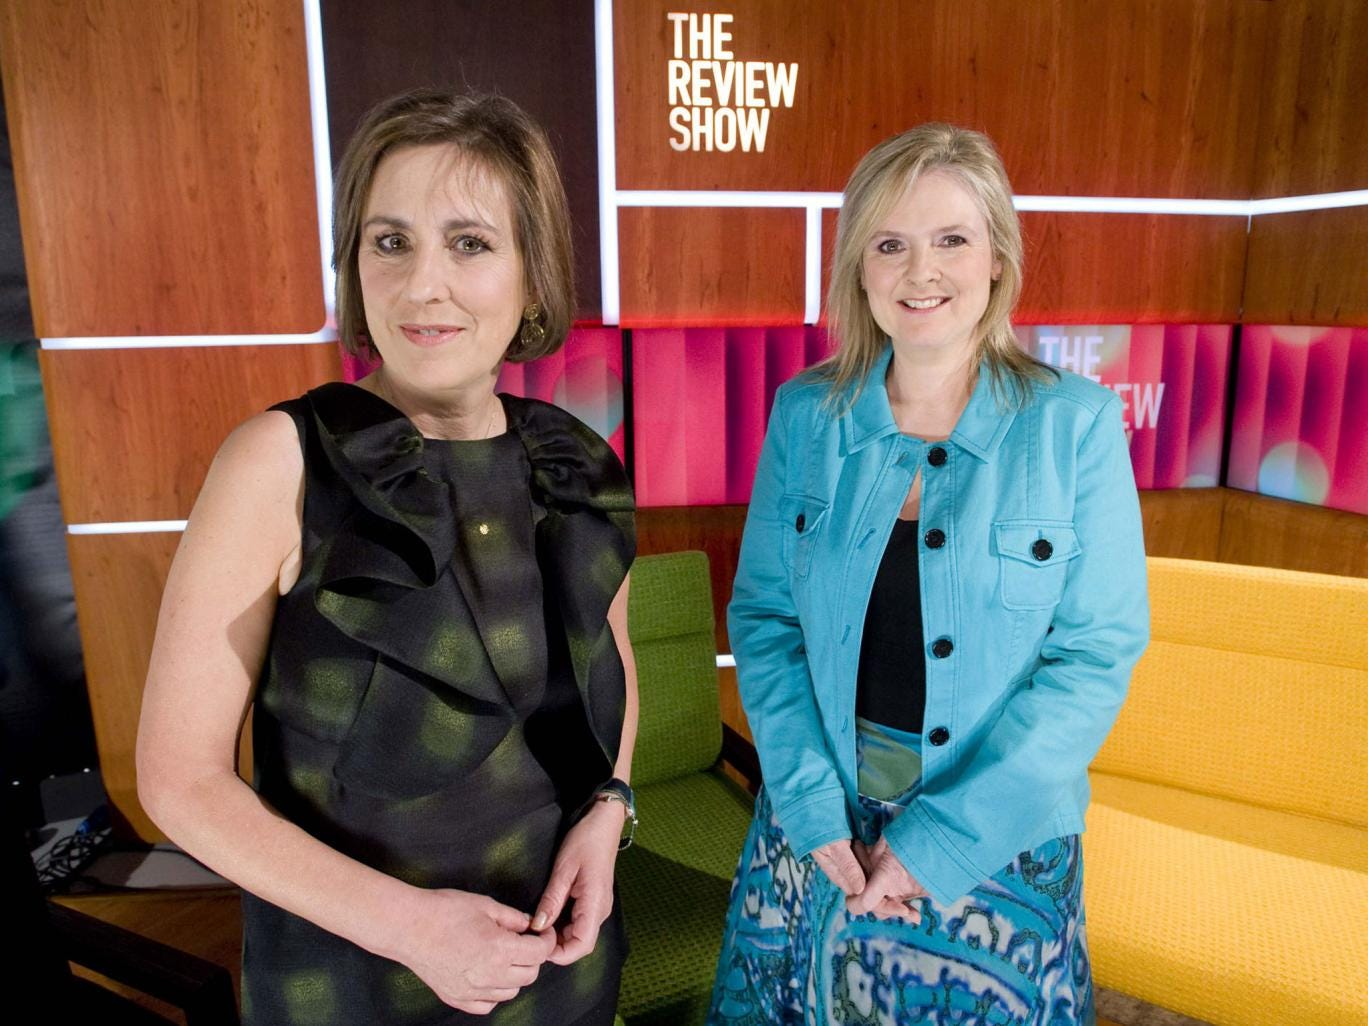 Last hurrah: Kirsty Wark and Martha Kearney, the presenters of 'The Review Show'